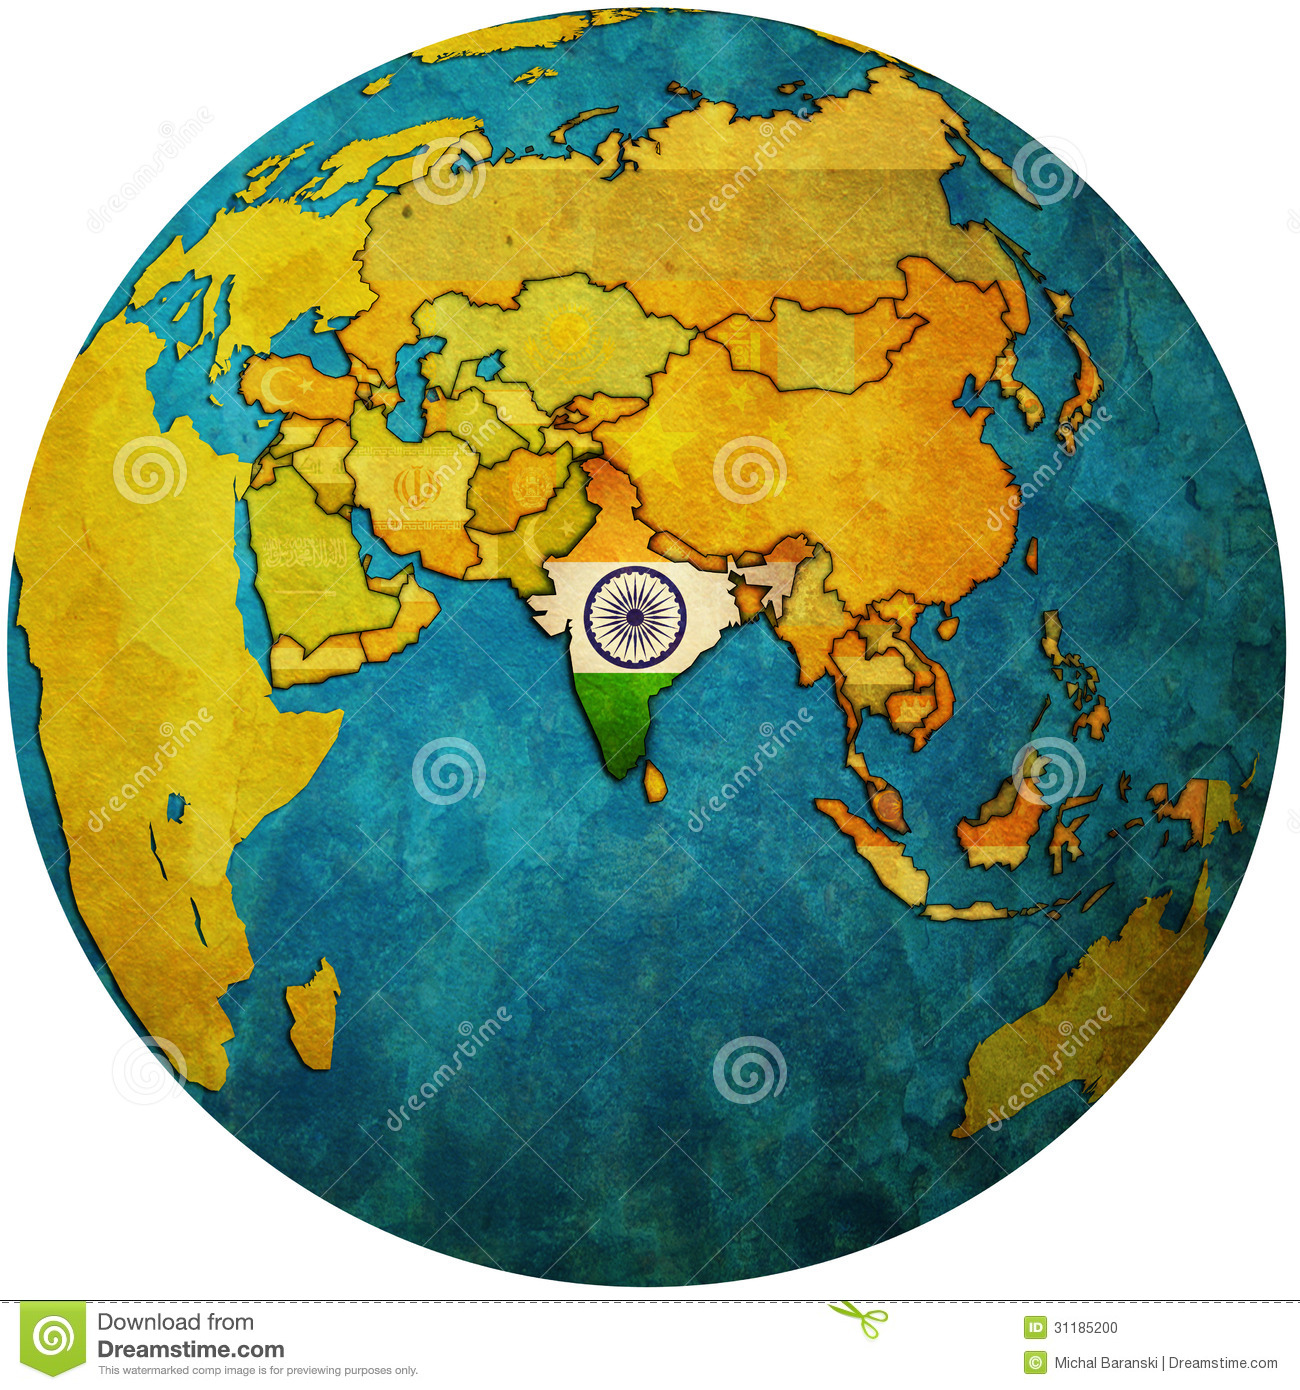 Isolated over white territory of india with flag on globe map.